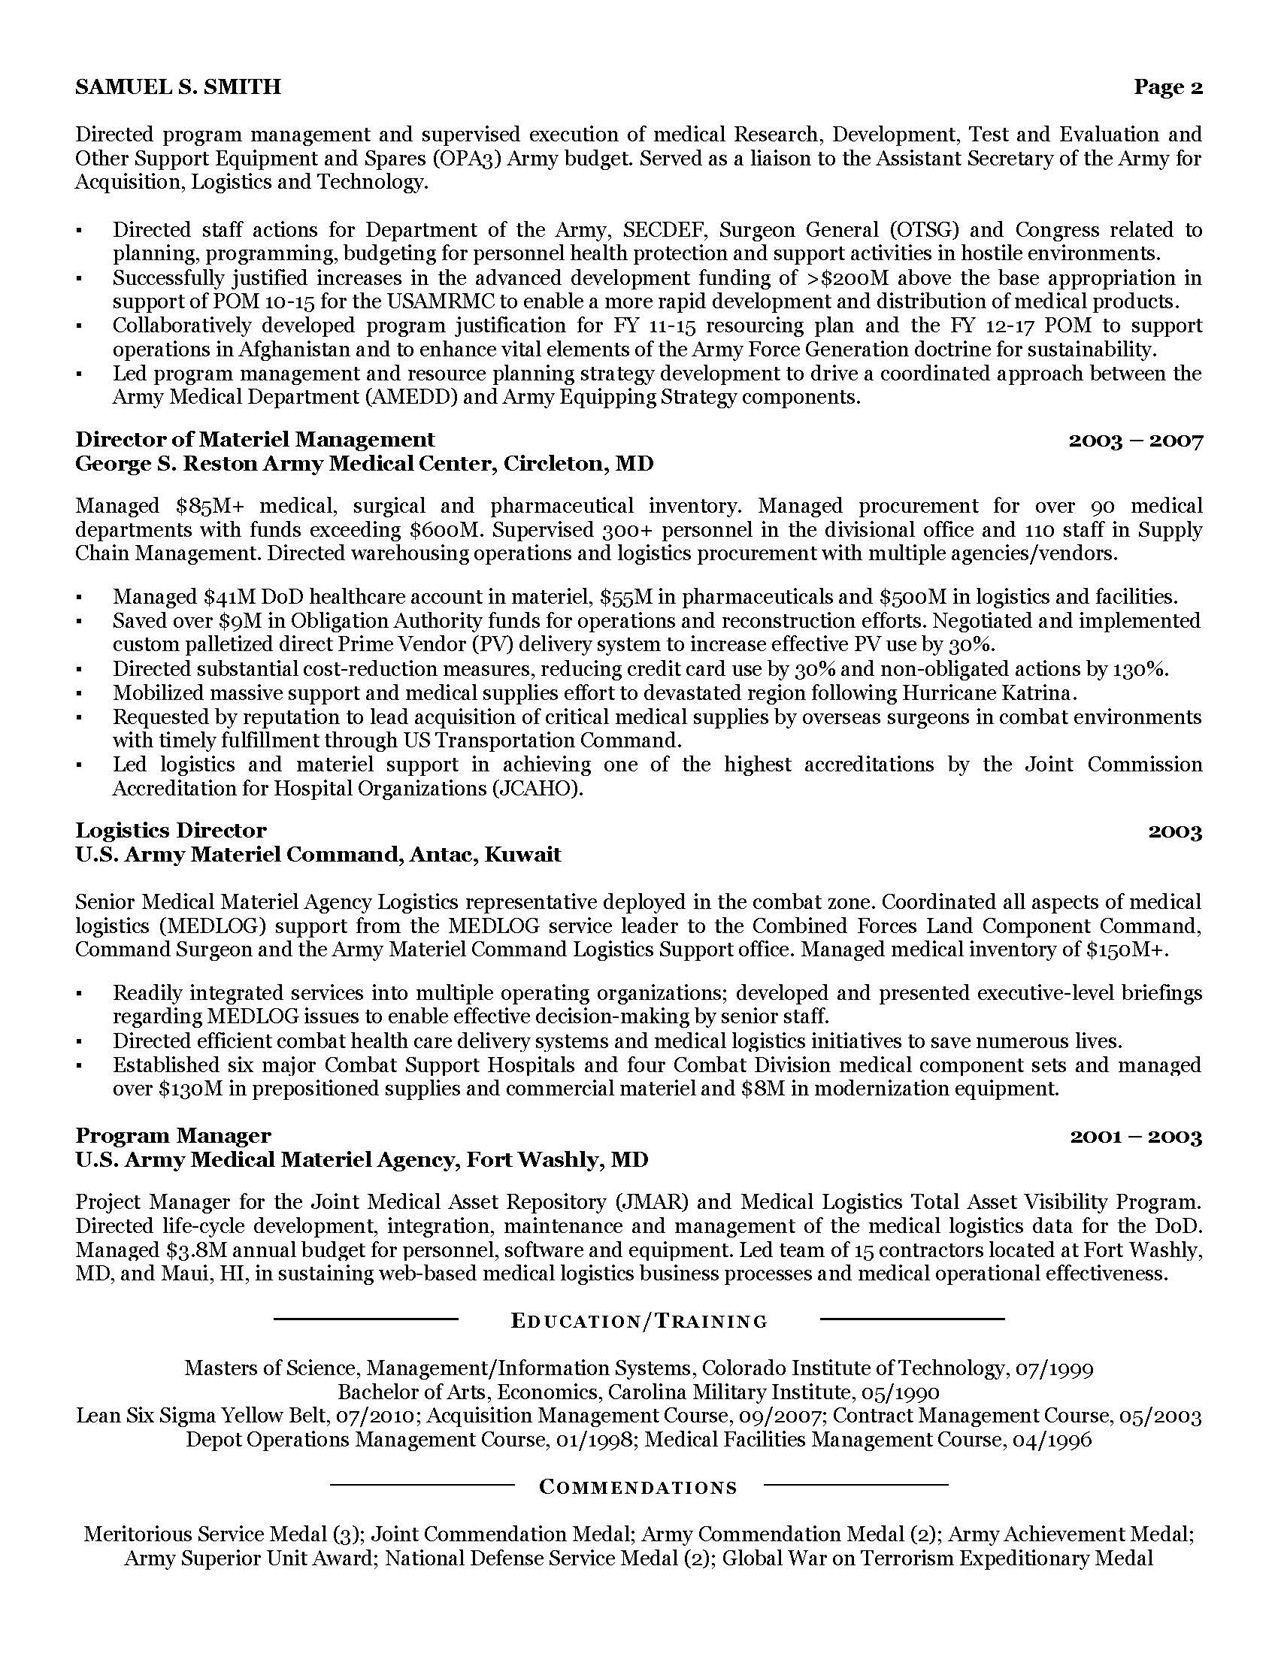 Byu Marriott School Resume Template - Resume Examples for 92y Resume Examples Fice